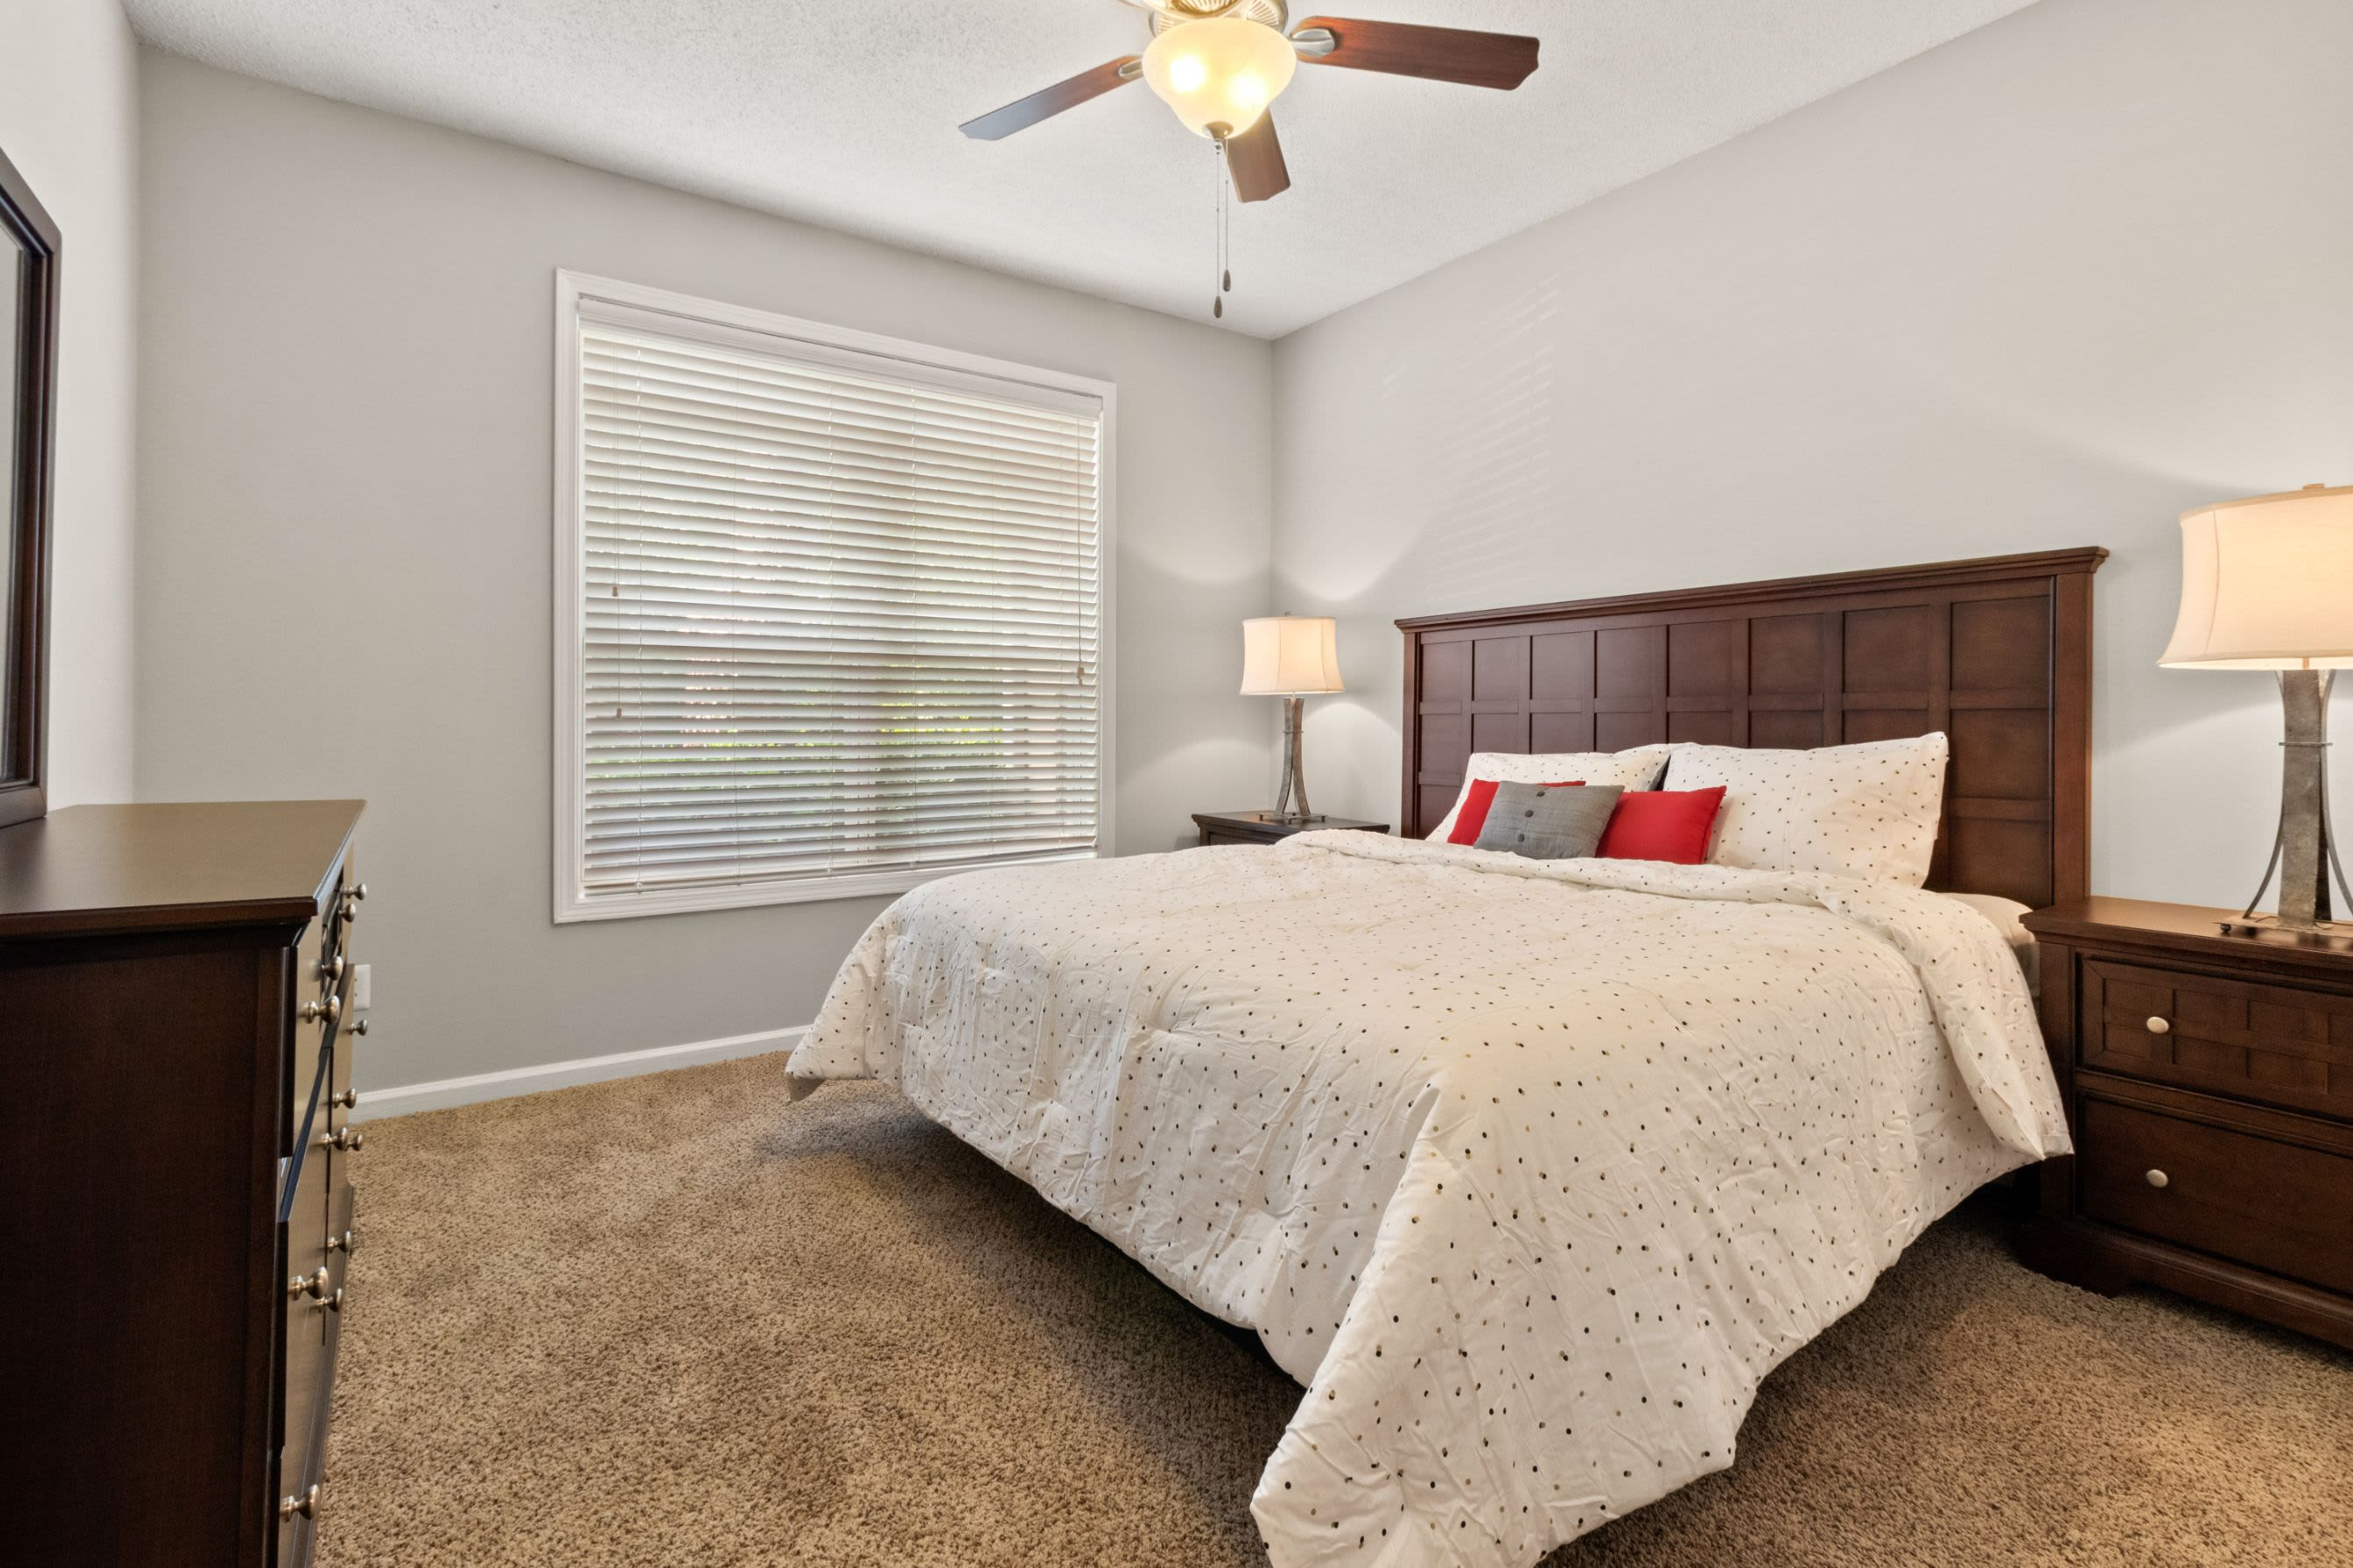 Bedroom with a ceiling fan at Marquis Midtown West in Atlanta, Georgia